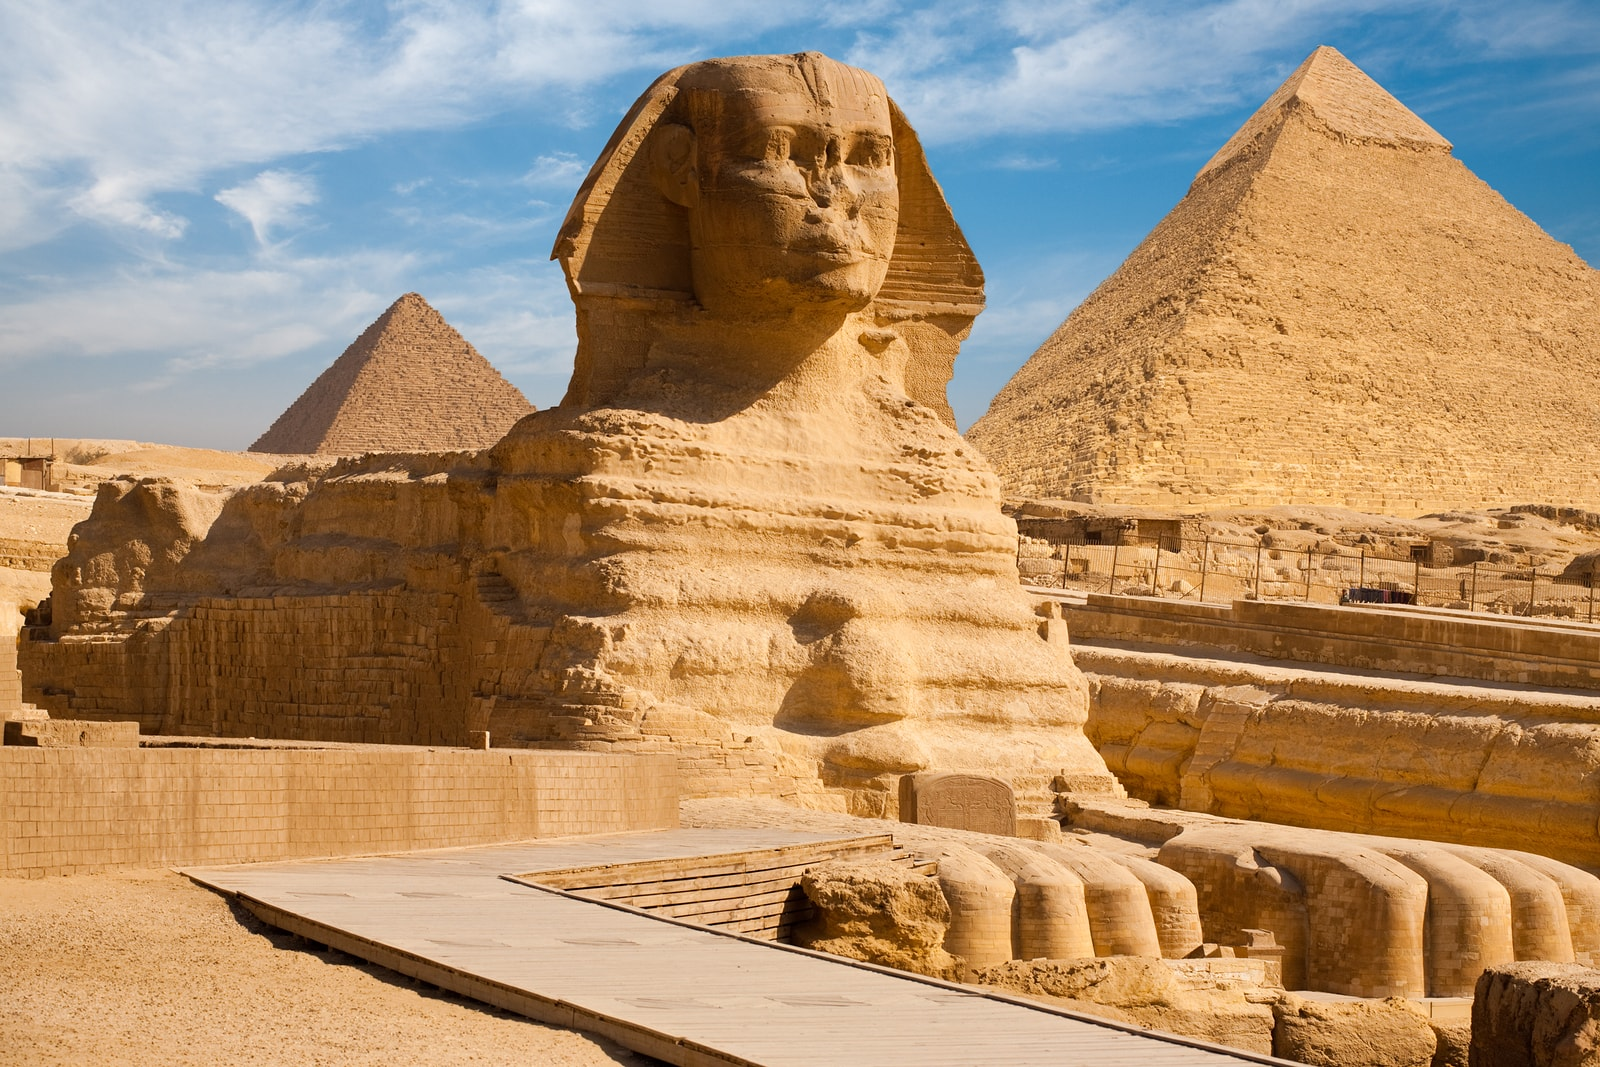 The Sphynx and the the Great Pyramid of Giza